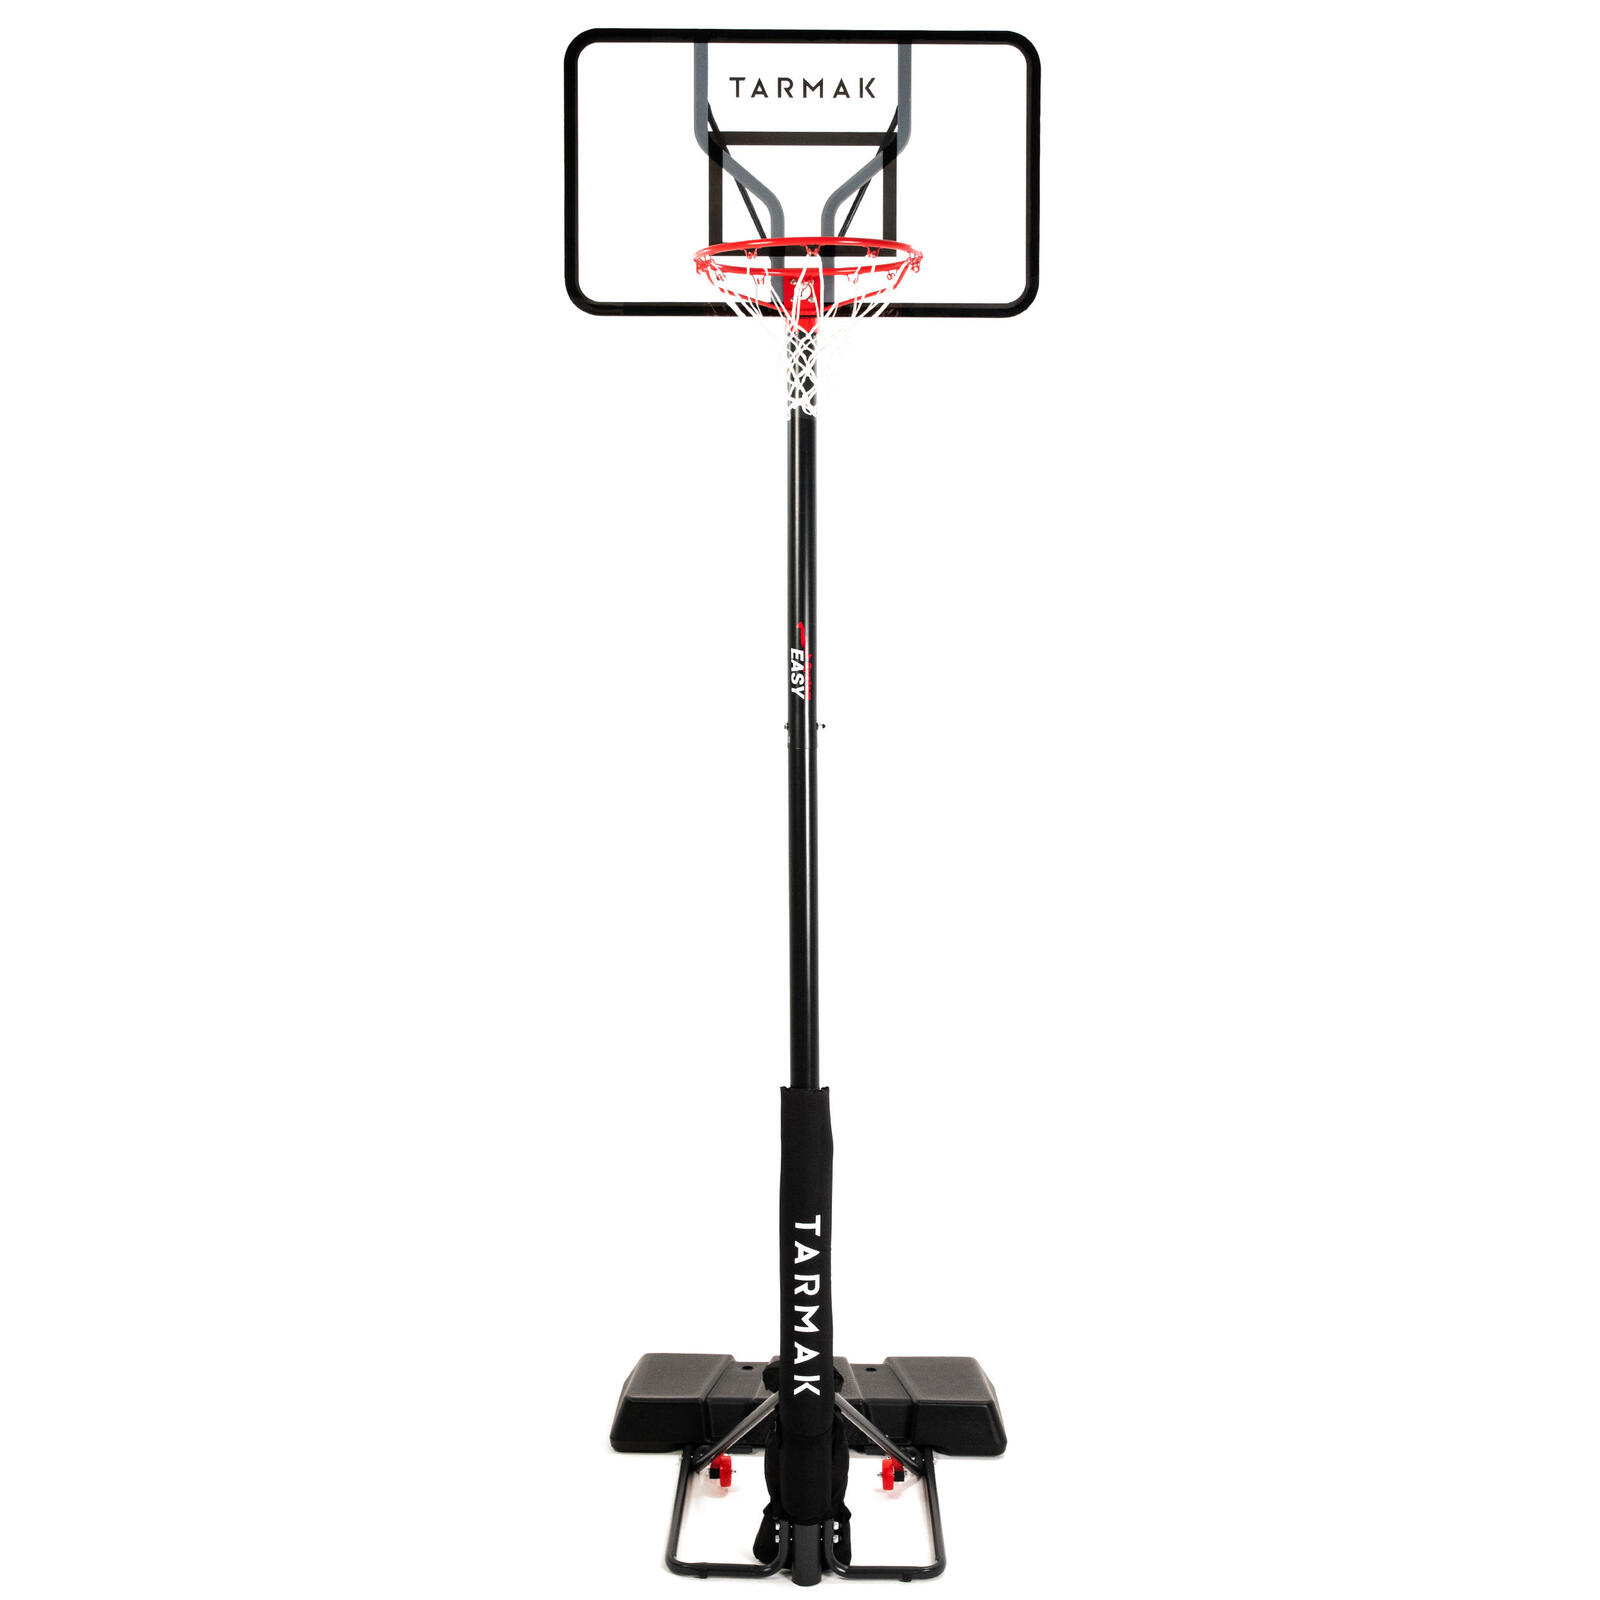 Polycarbonate basketball hoop stand black adjusts from 2.2m to 3.05m